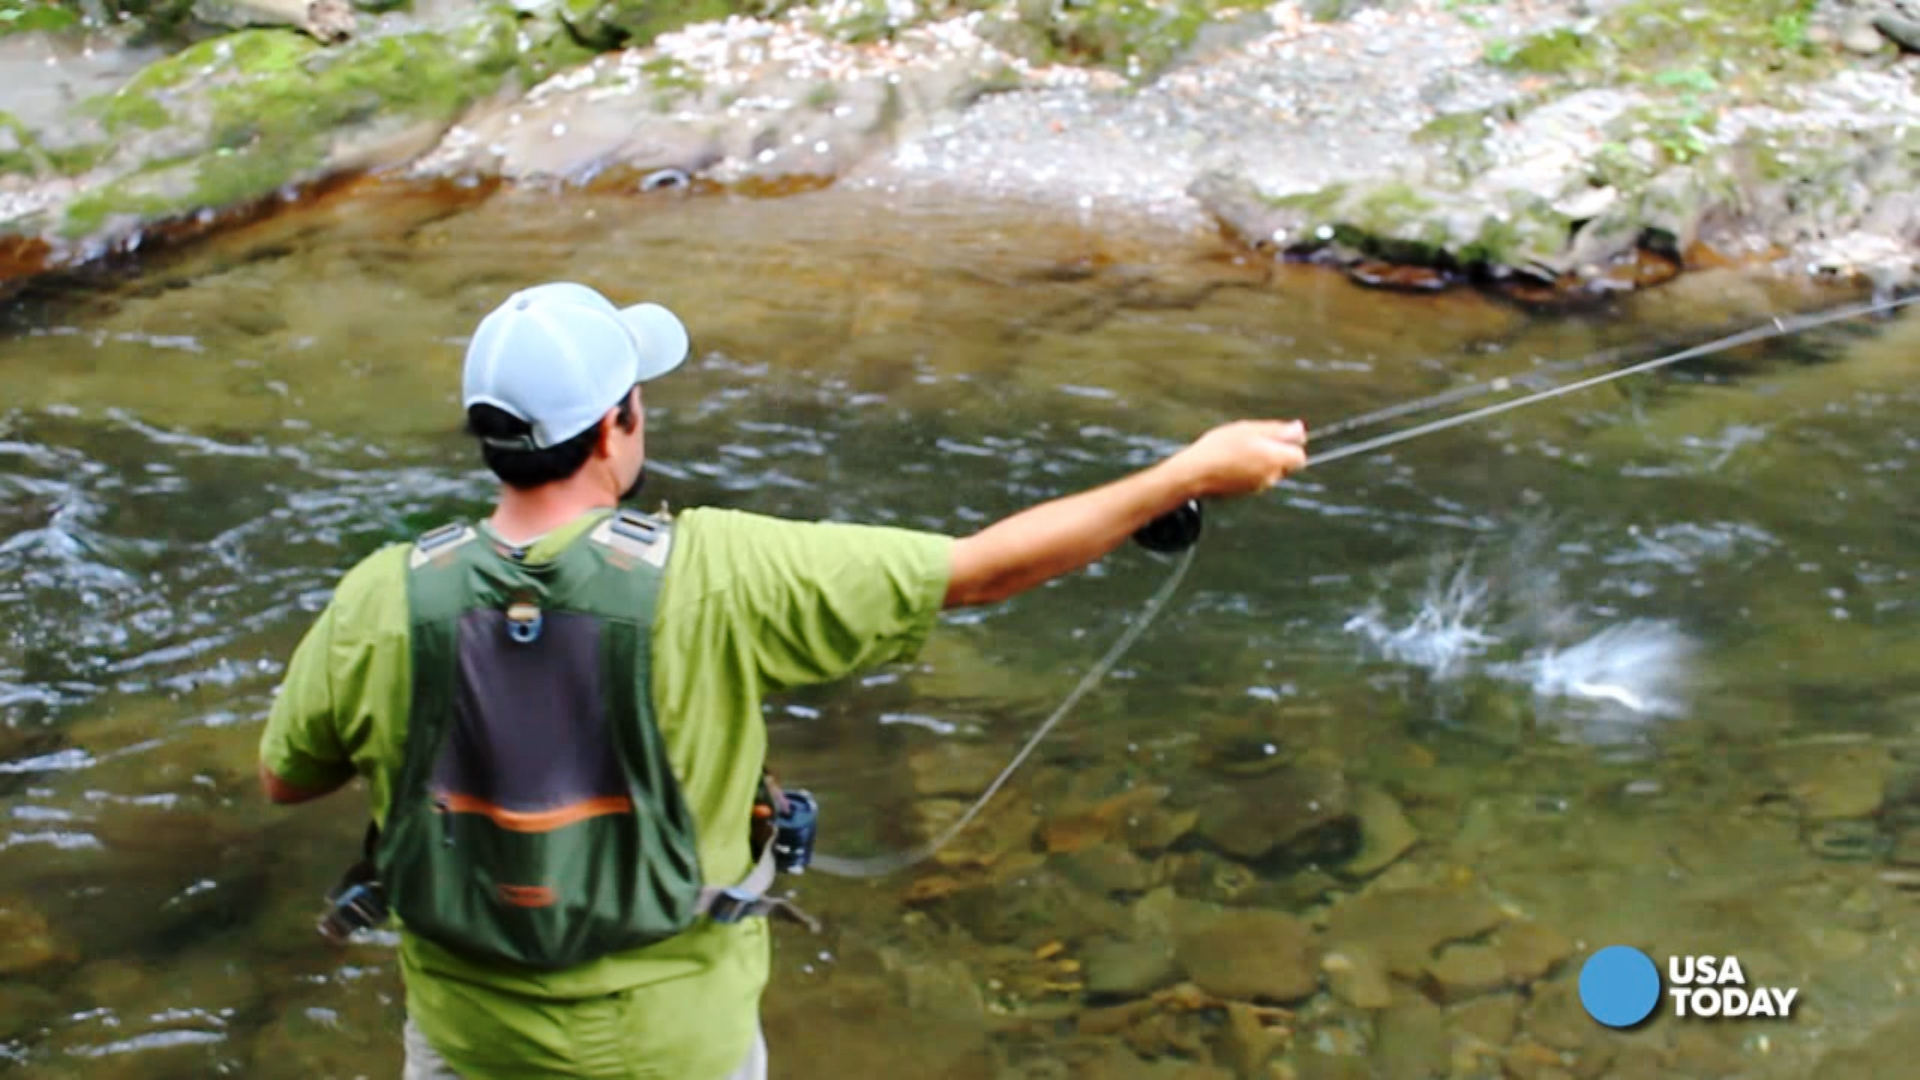 5 things to know about fly fishing for Fly fishing guide jobs